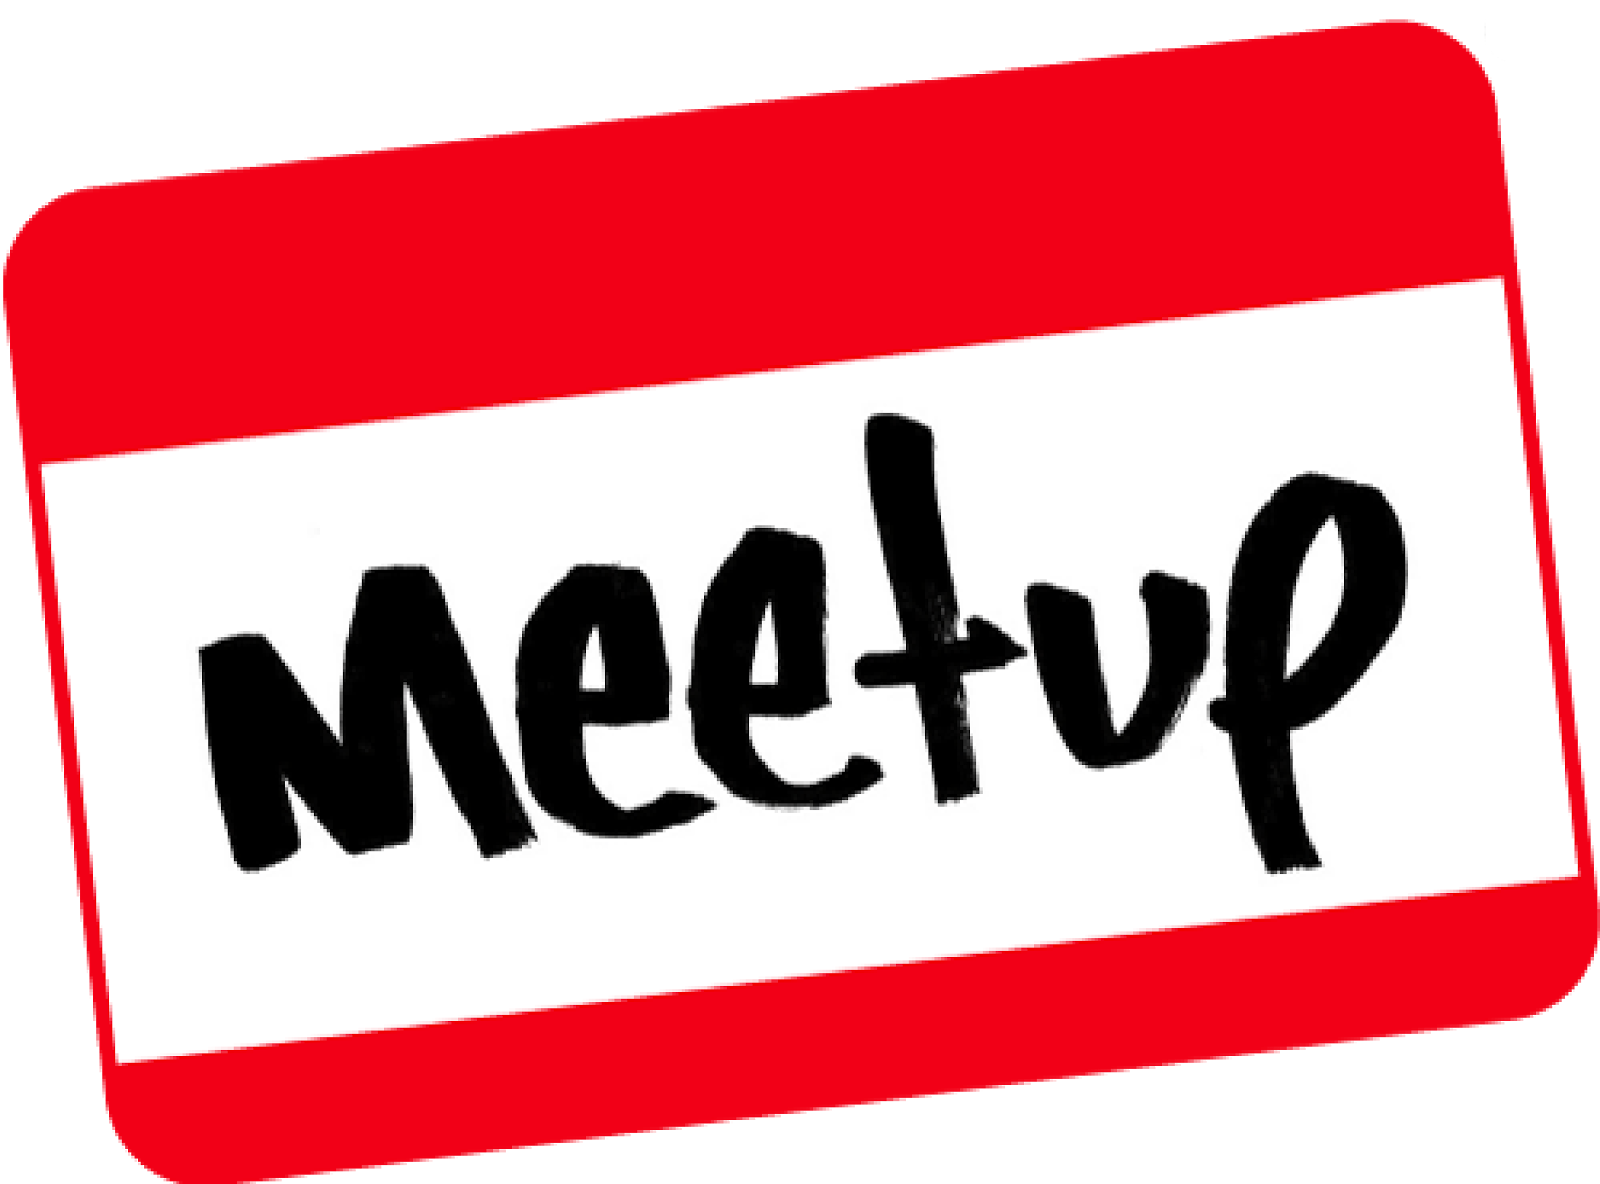 https://www.meetup.com/es-ES/S3enpractica/events/258786164/